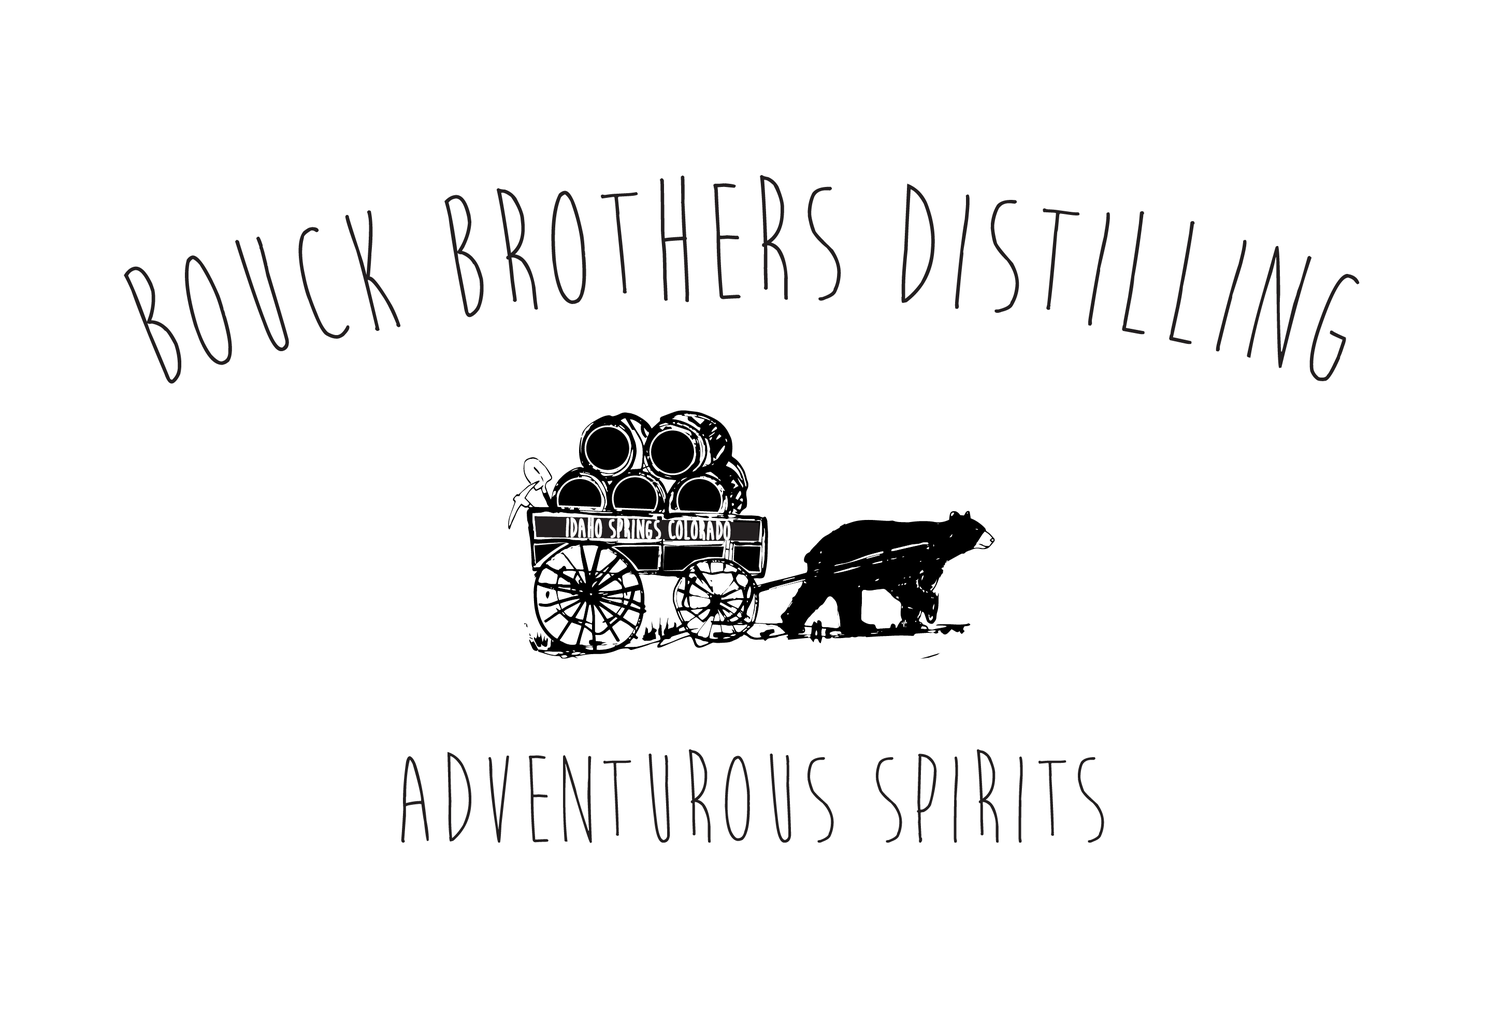 Bouck Brothers Distilling